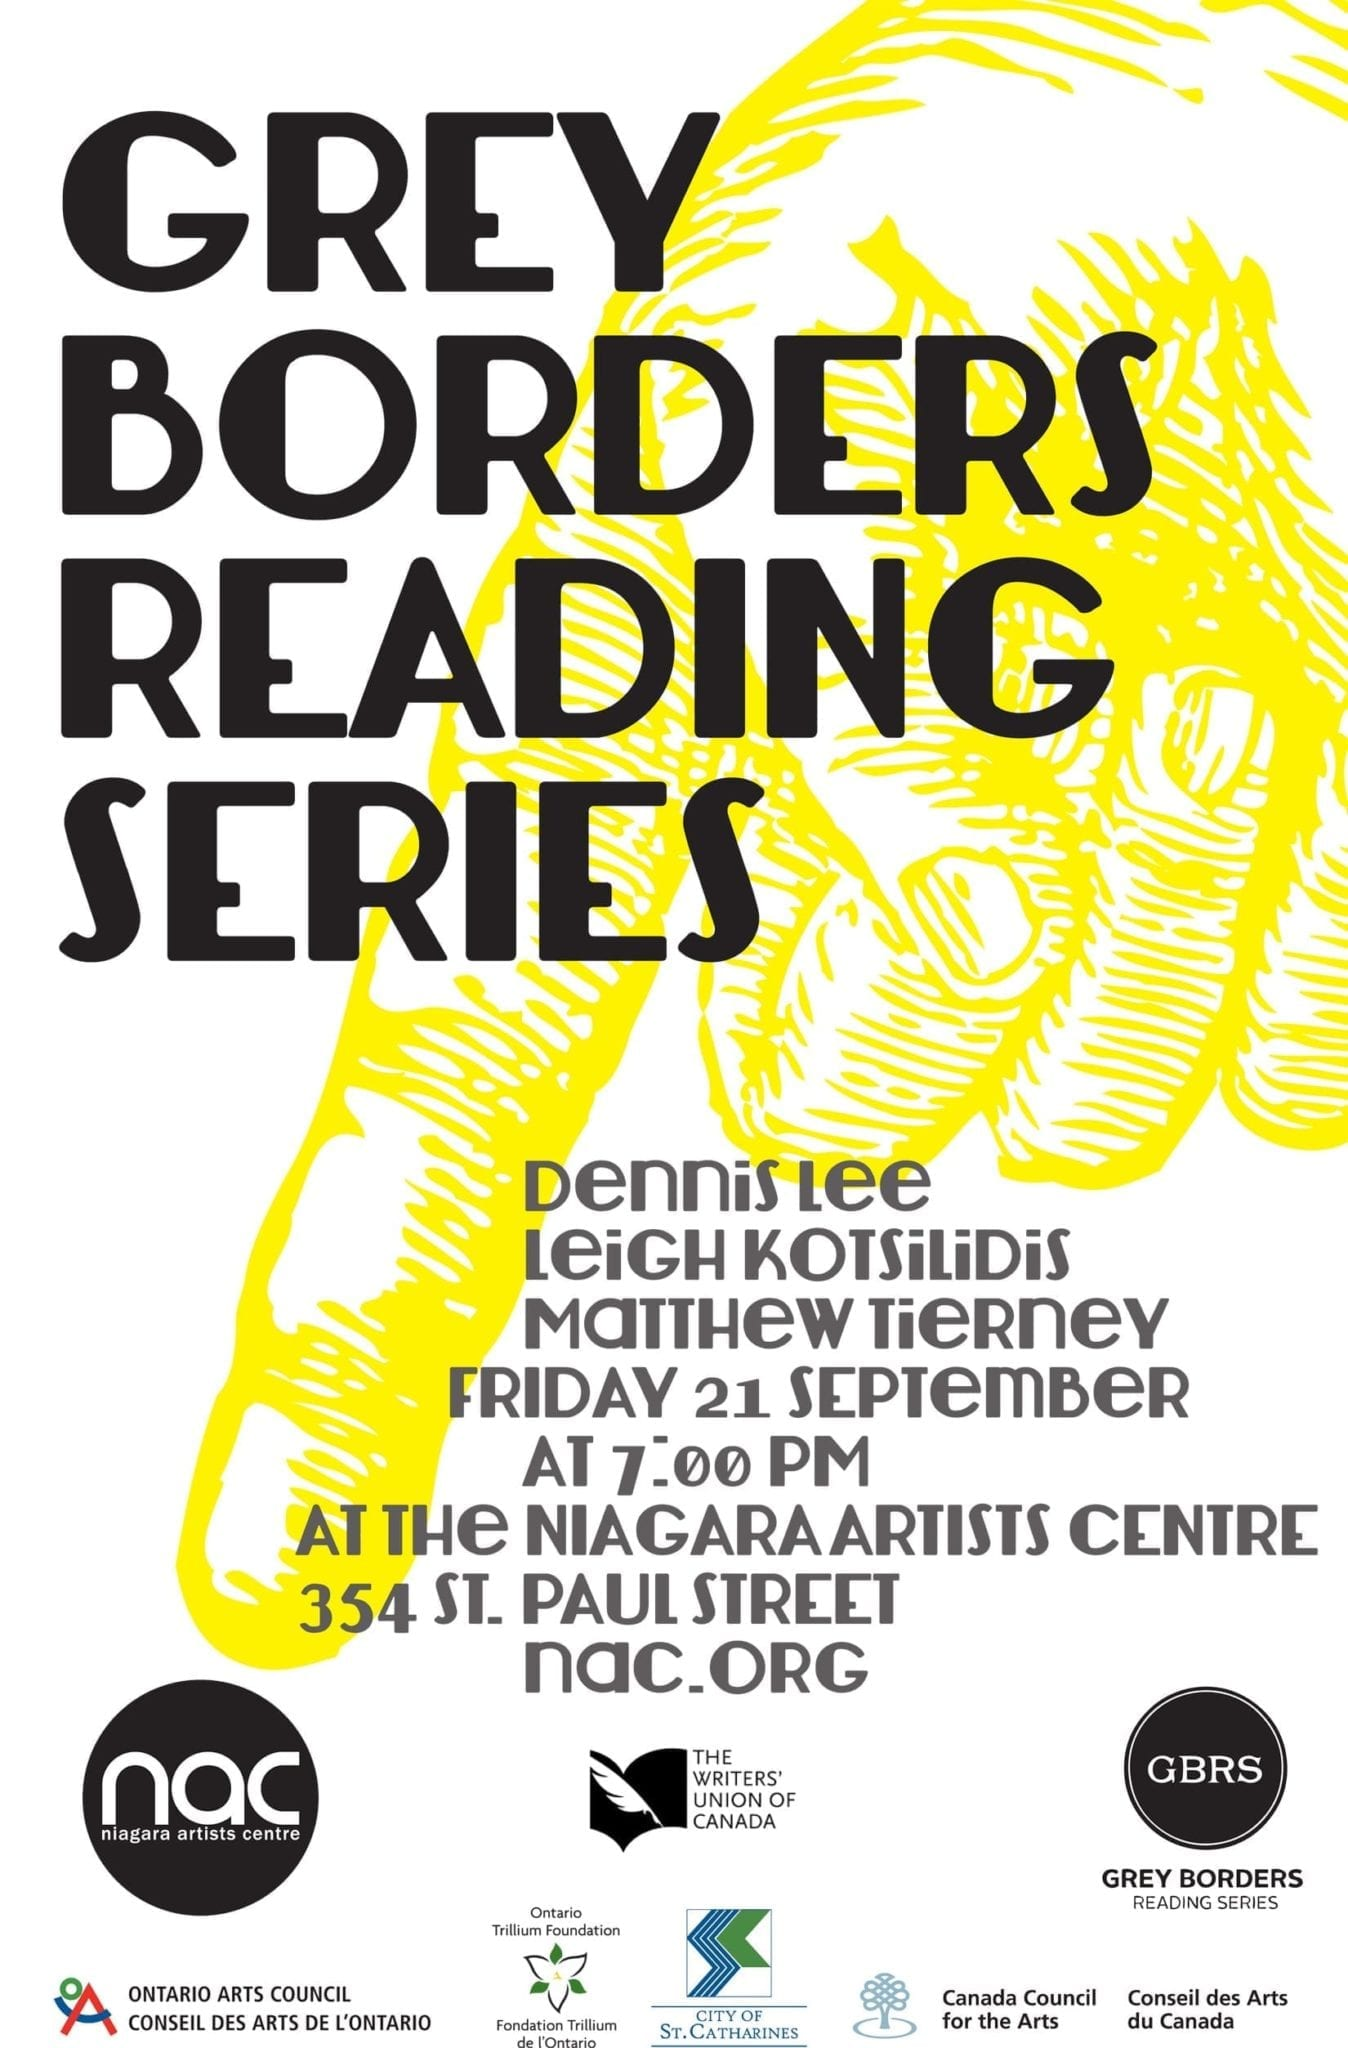 Grey Borders Reading Series